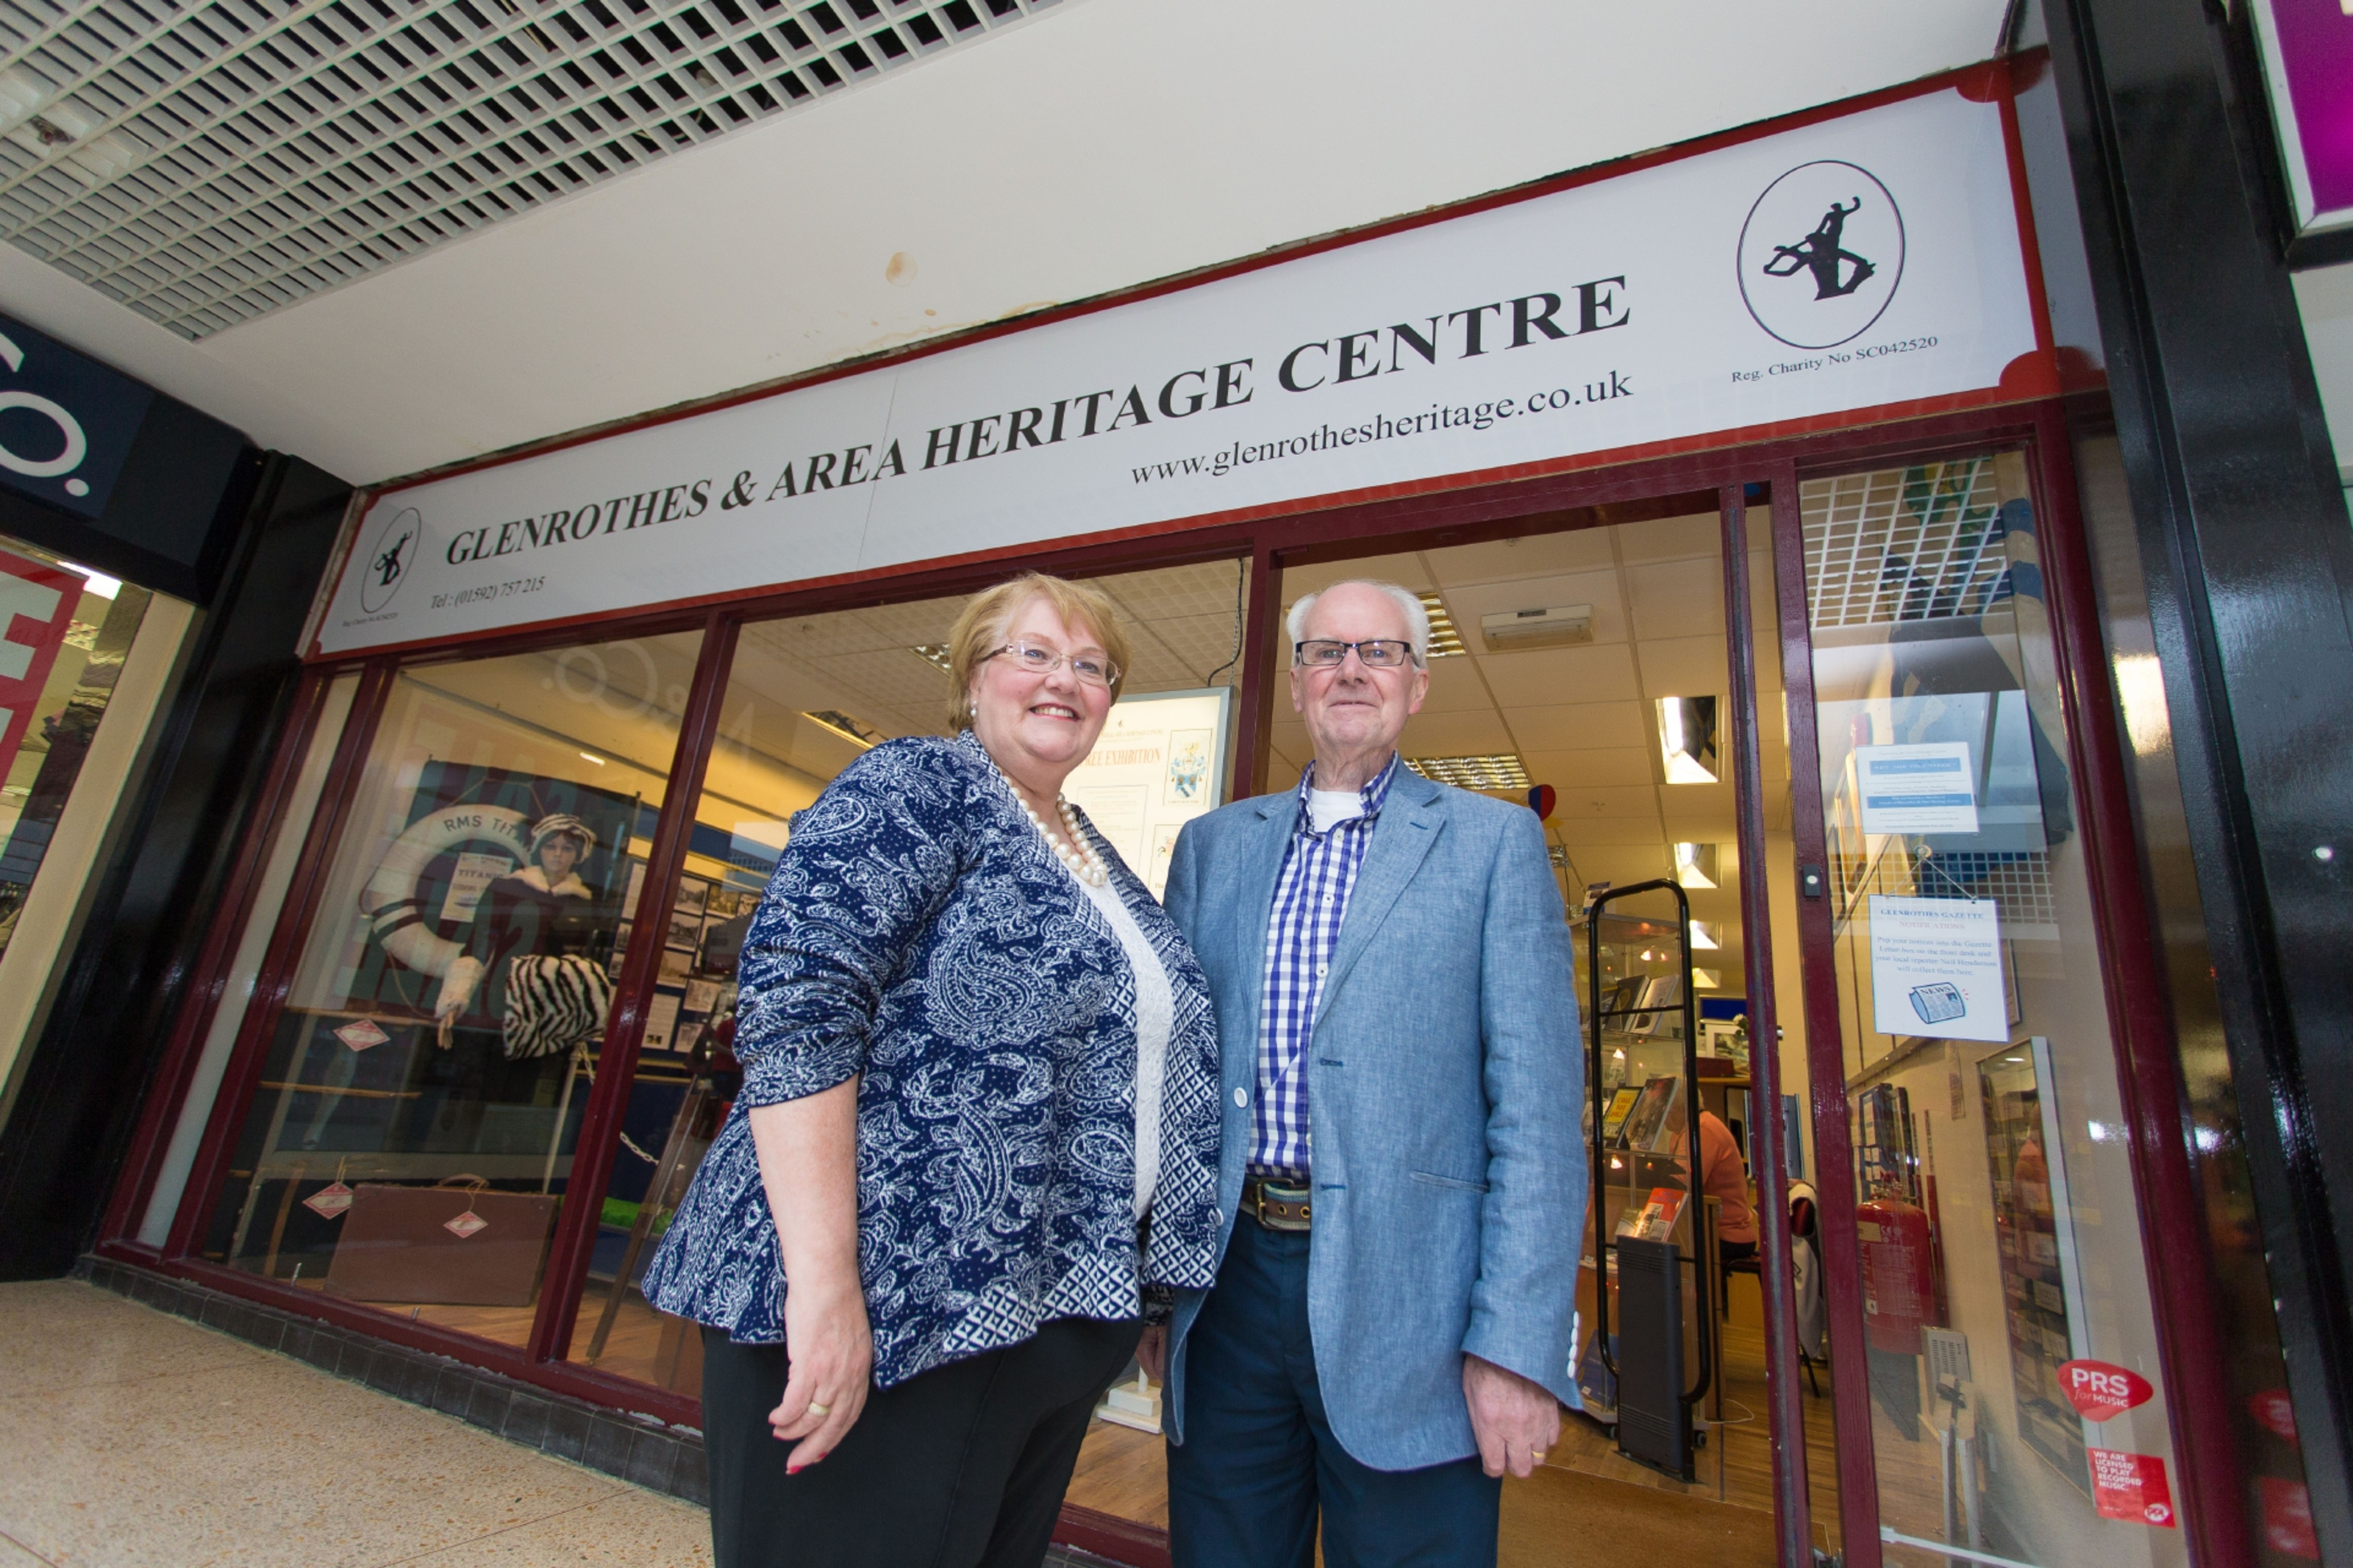 Founder and Chair of the Heritage Centre  Linda Ballingall and (right) Trustee David Brown.